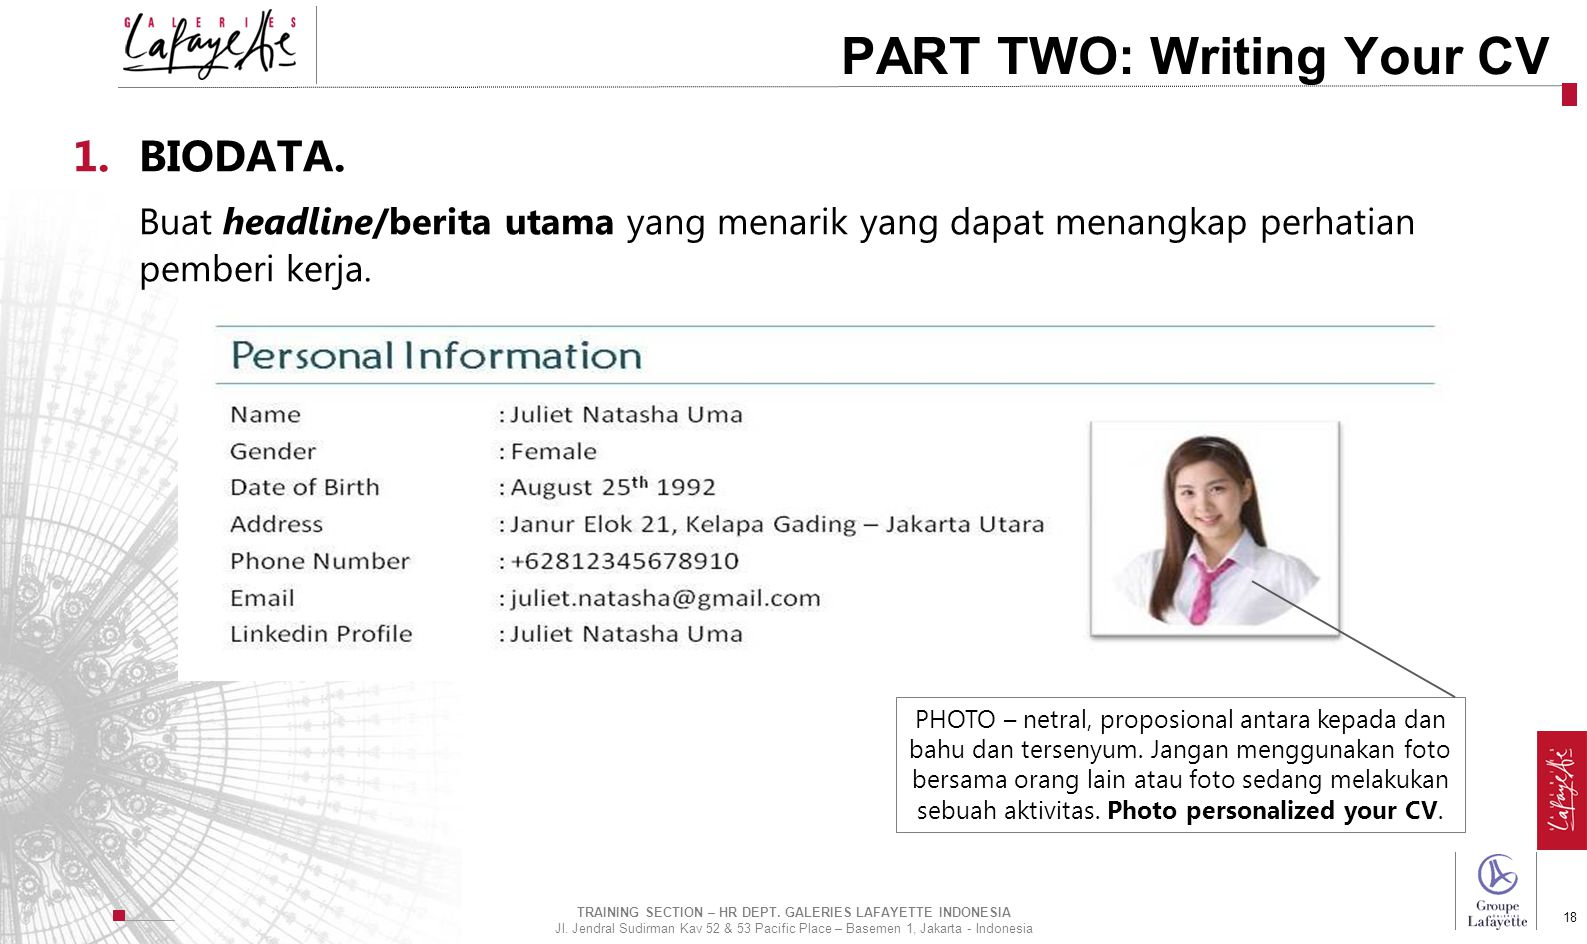 TRAINING SECTION – HR DEPT. GALERIES LAFAYETTE INDONESIA